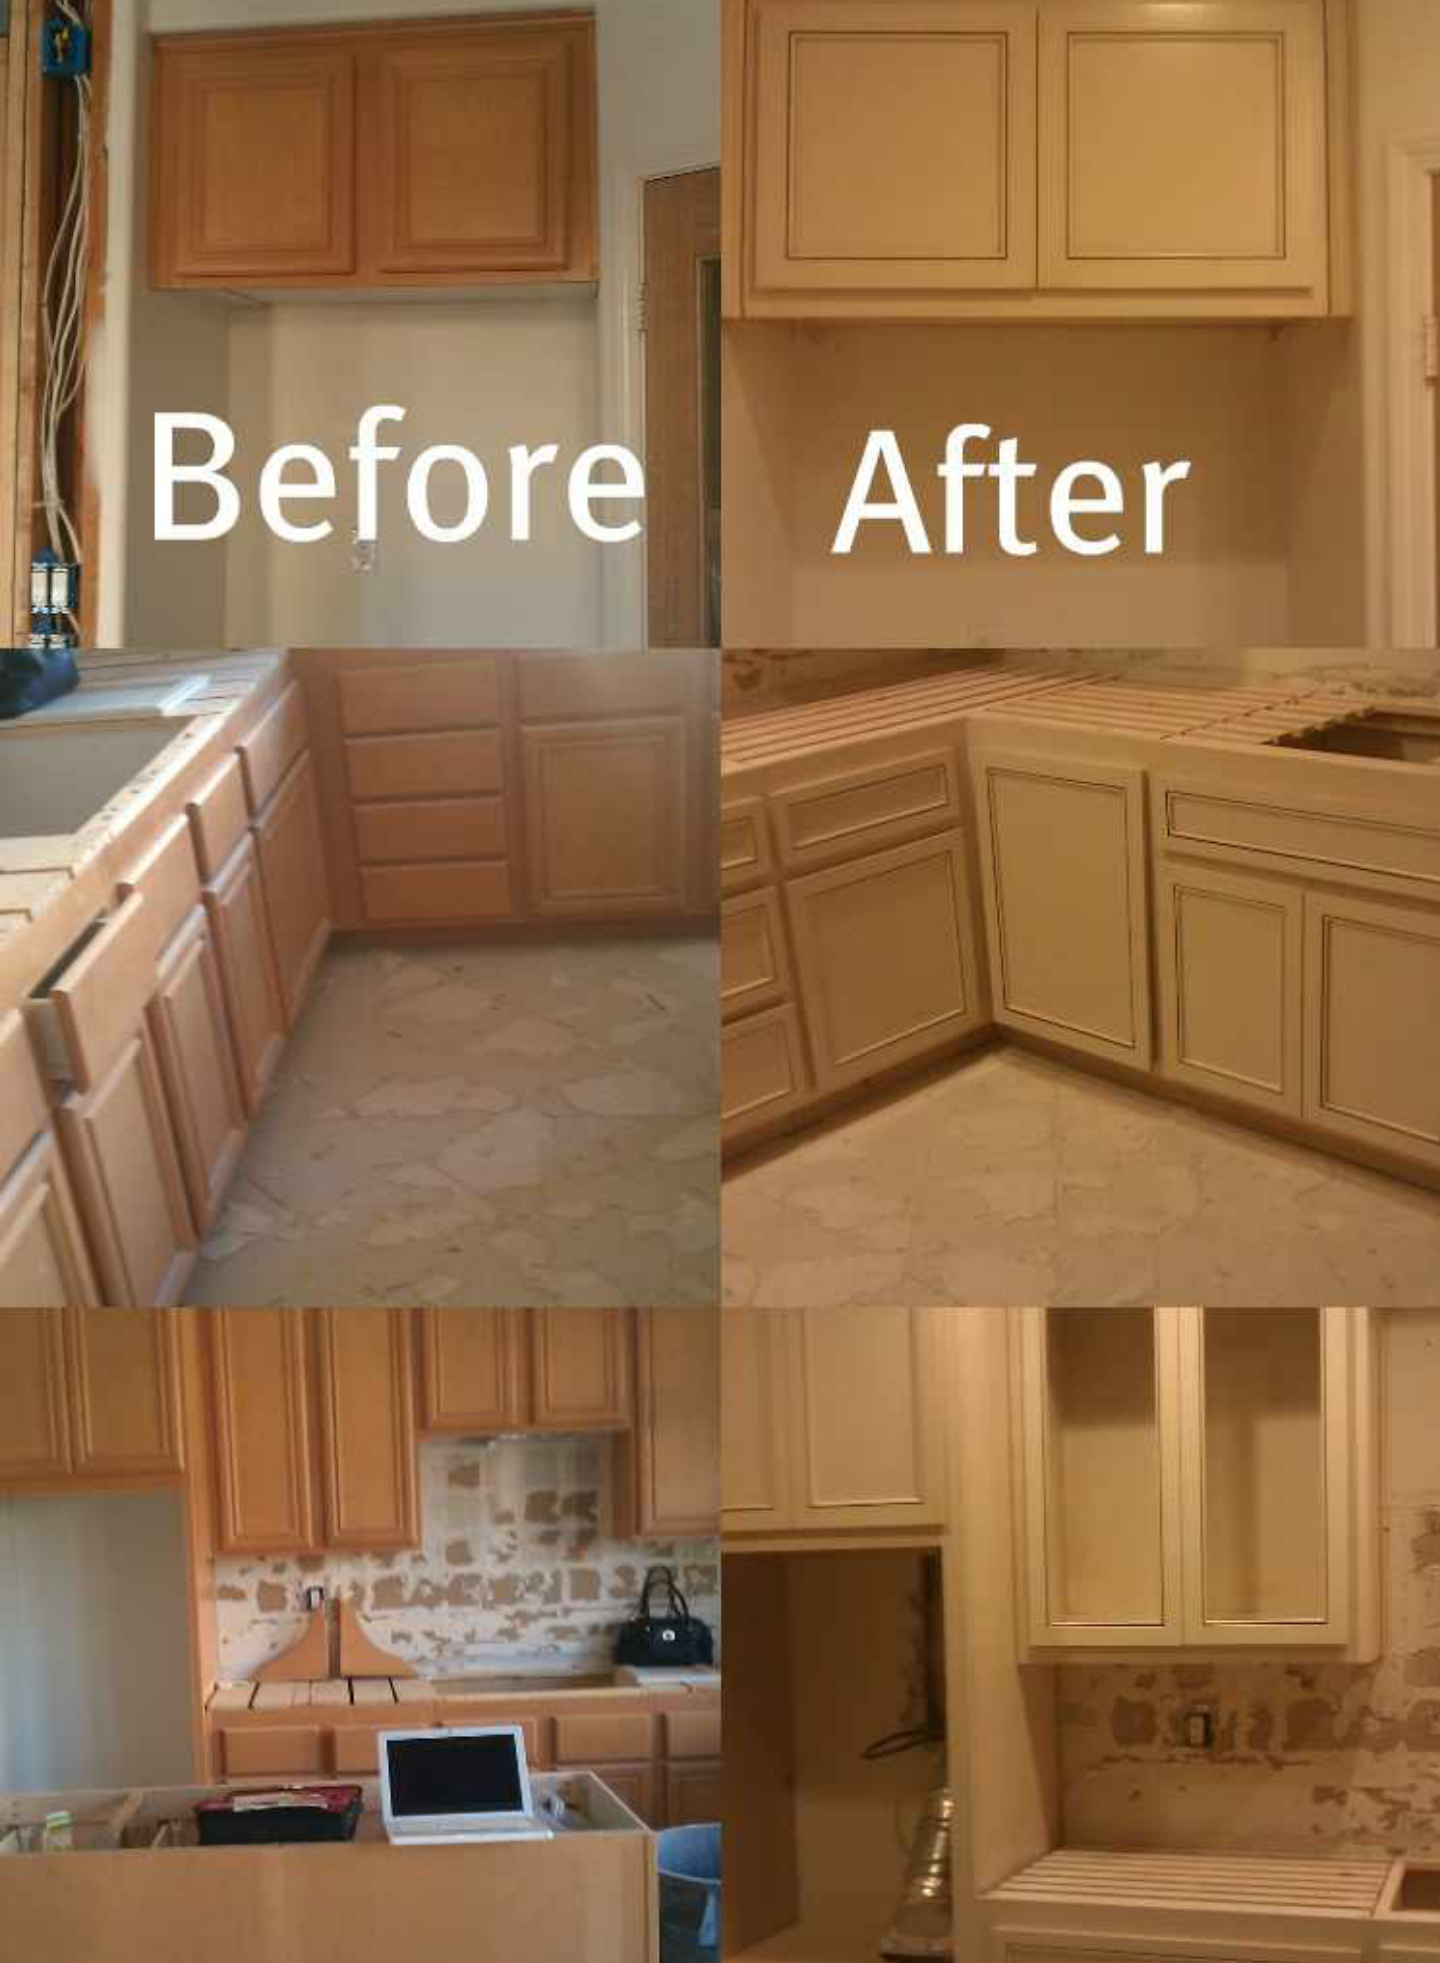 Painting Kitchen Cabinets Denver Painting Kitchen Cabinets and